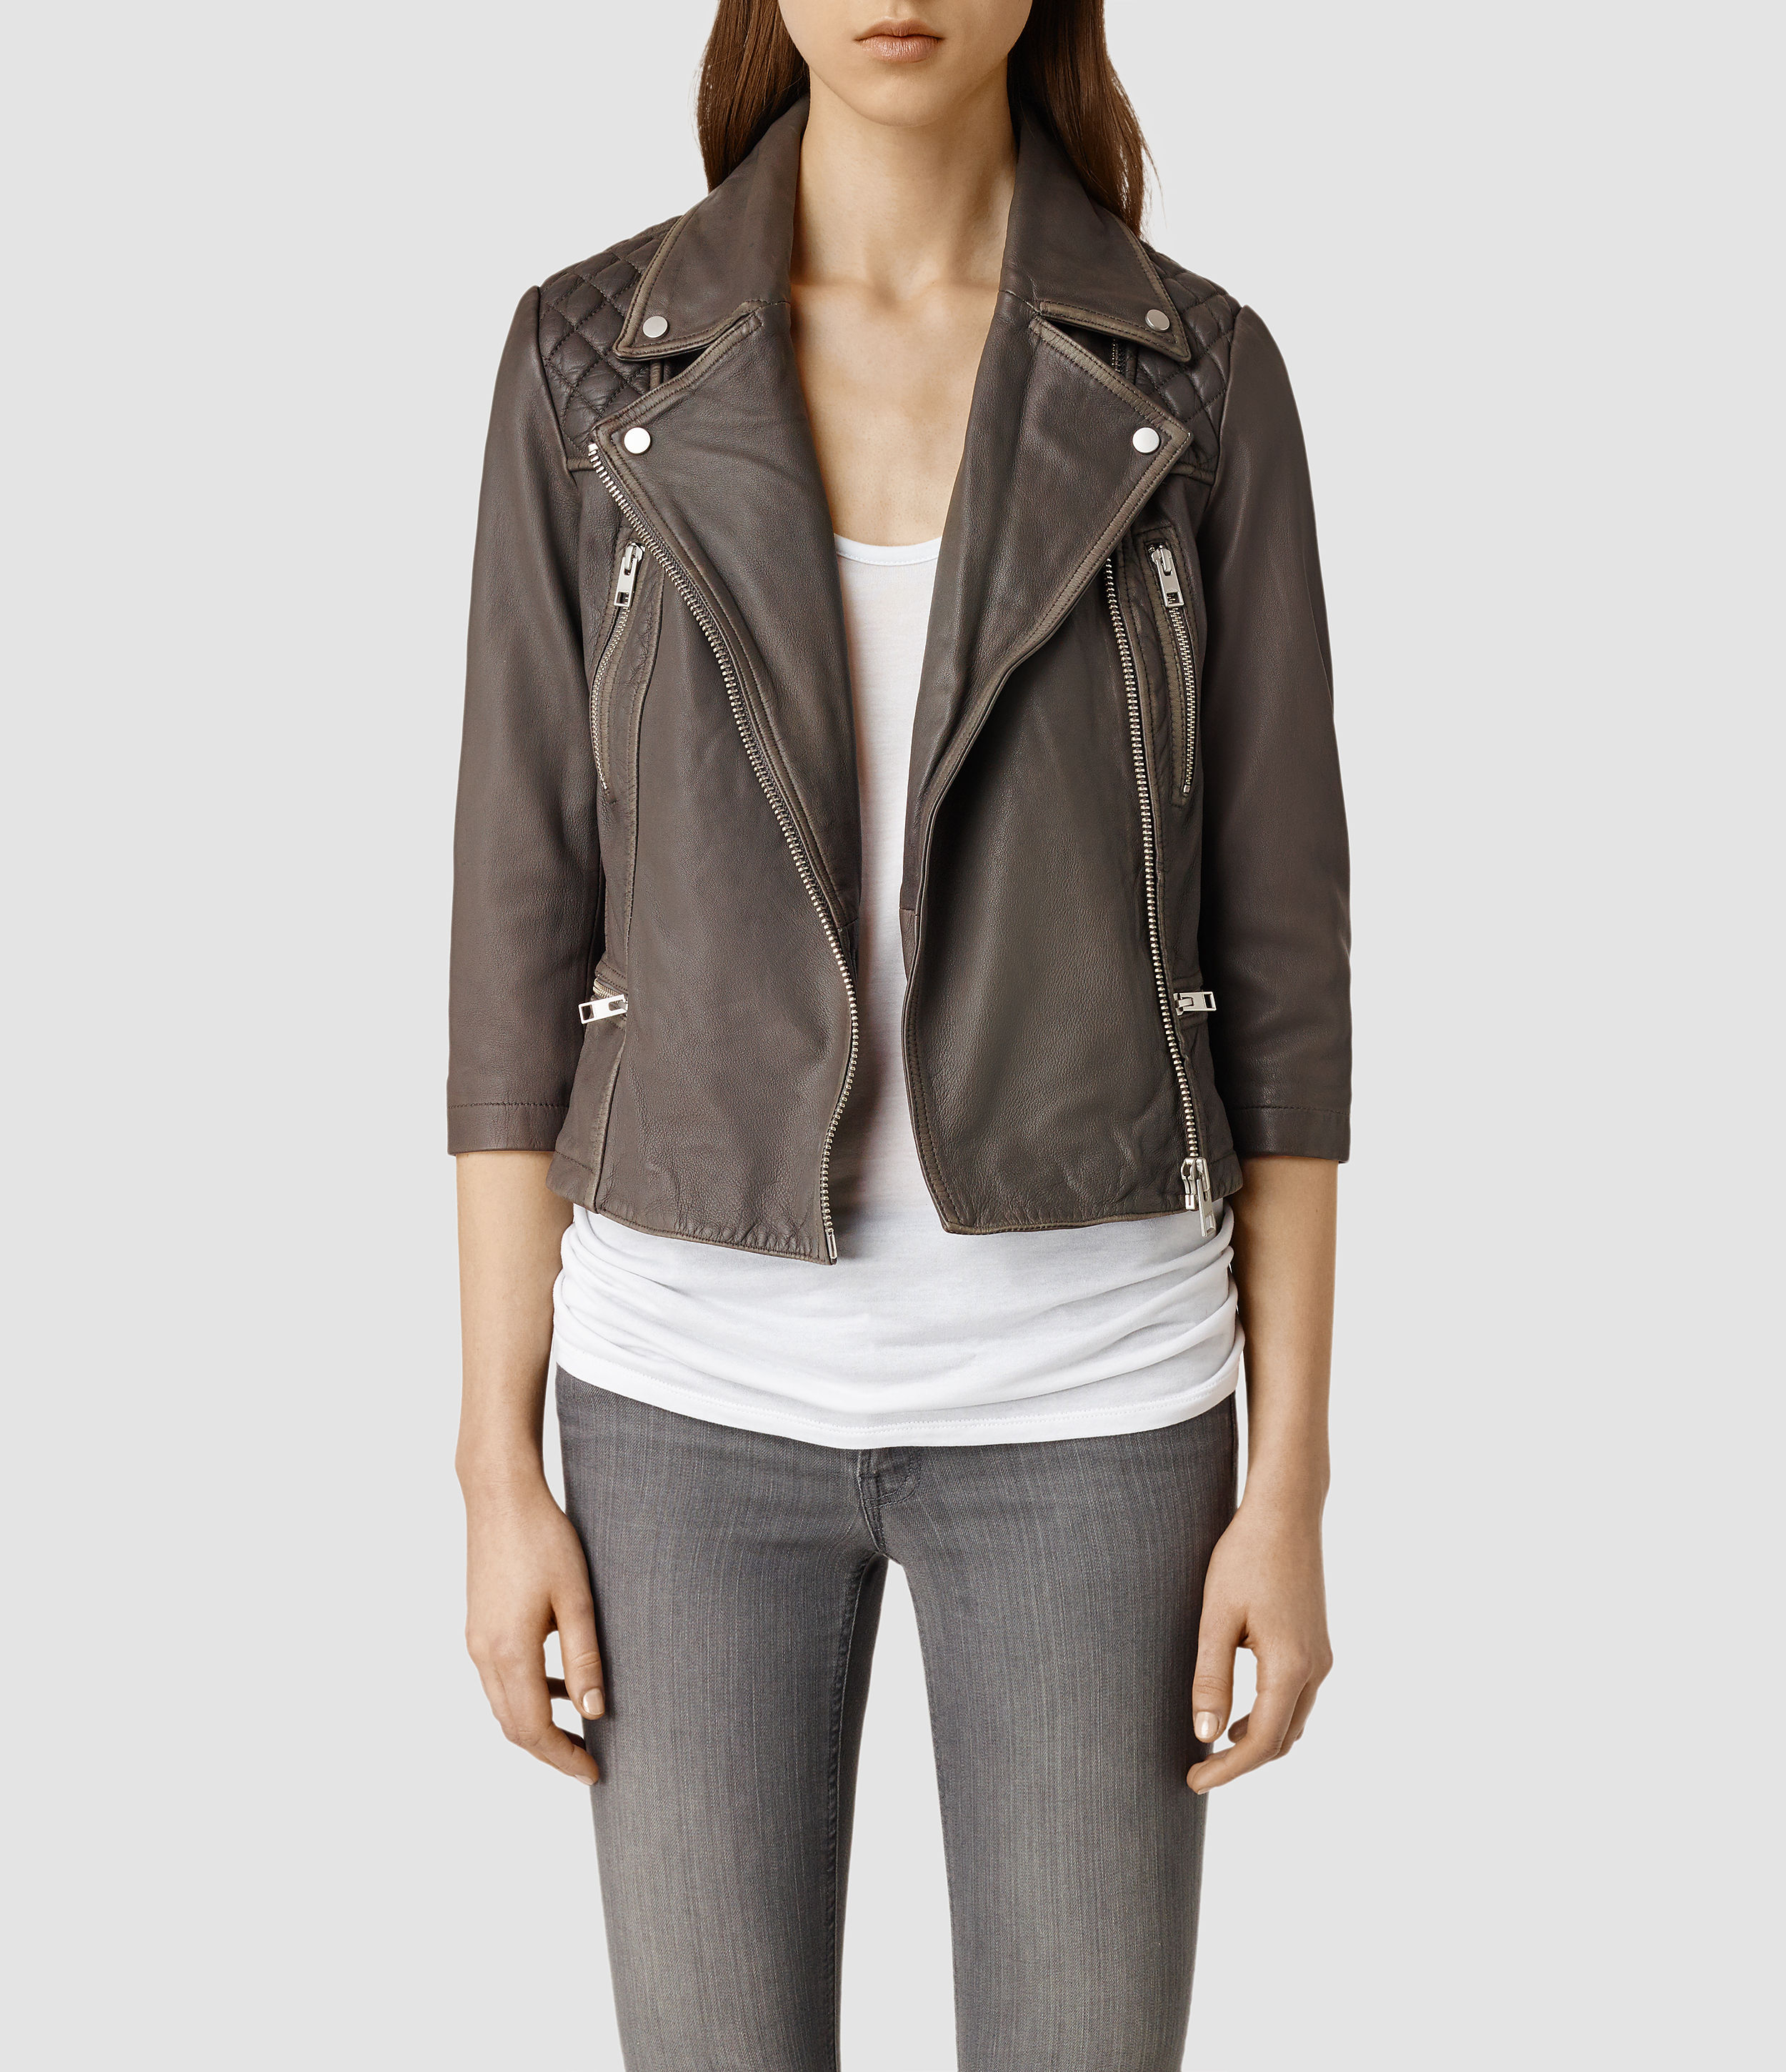 Crop leather jackets